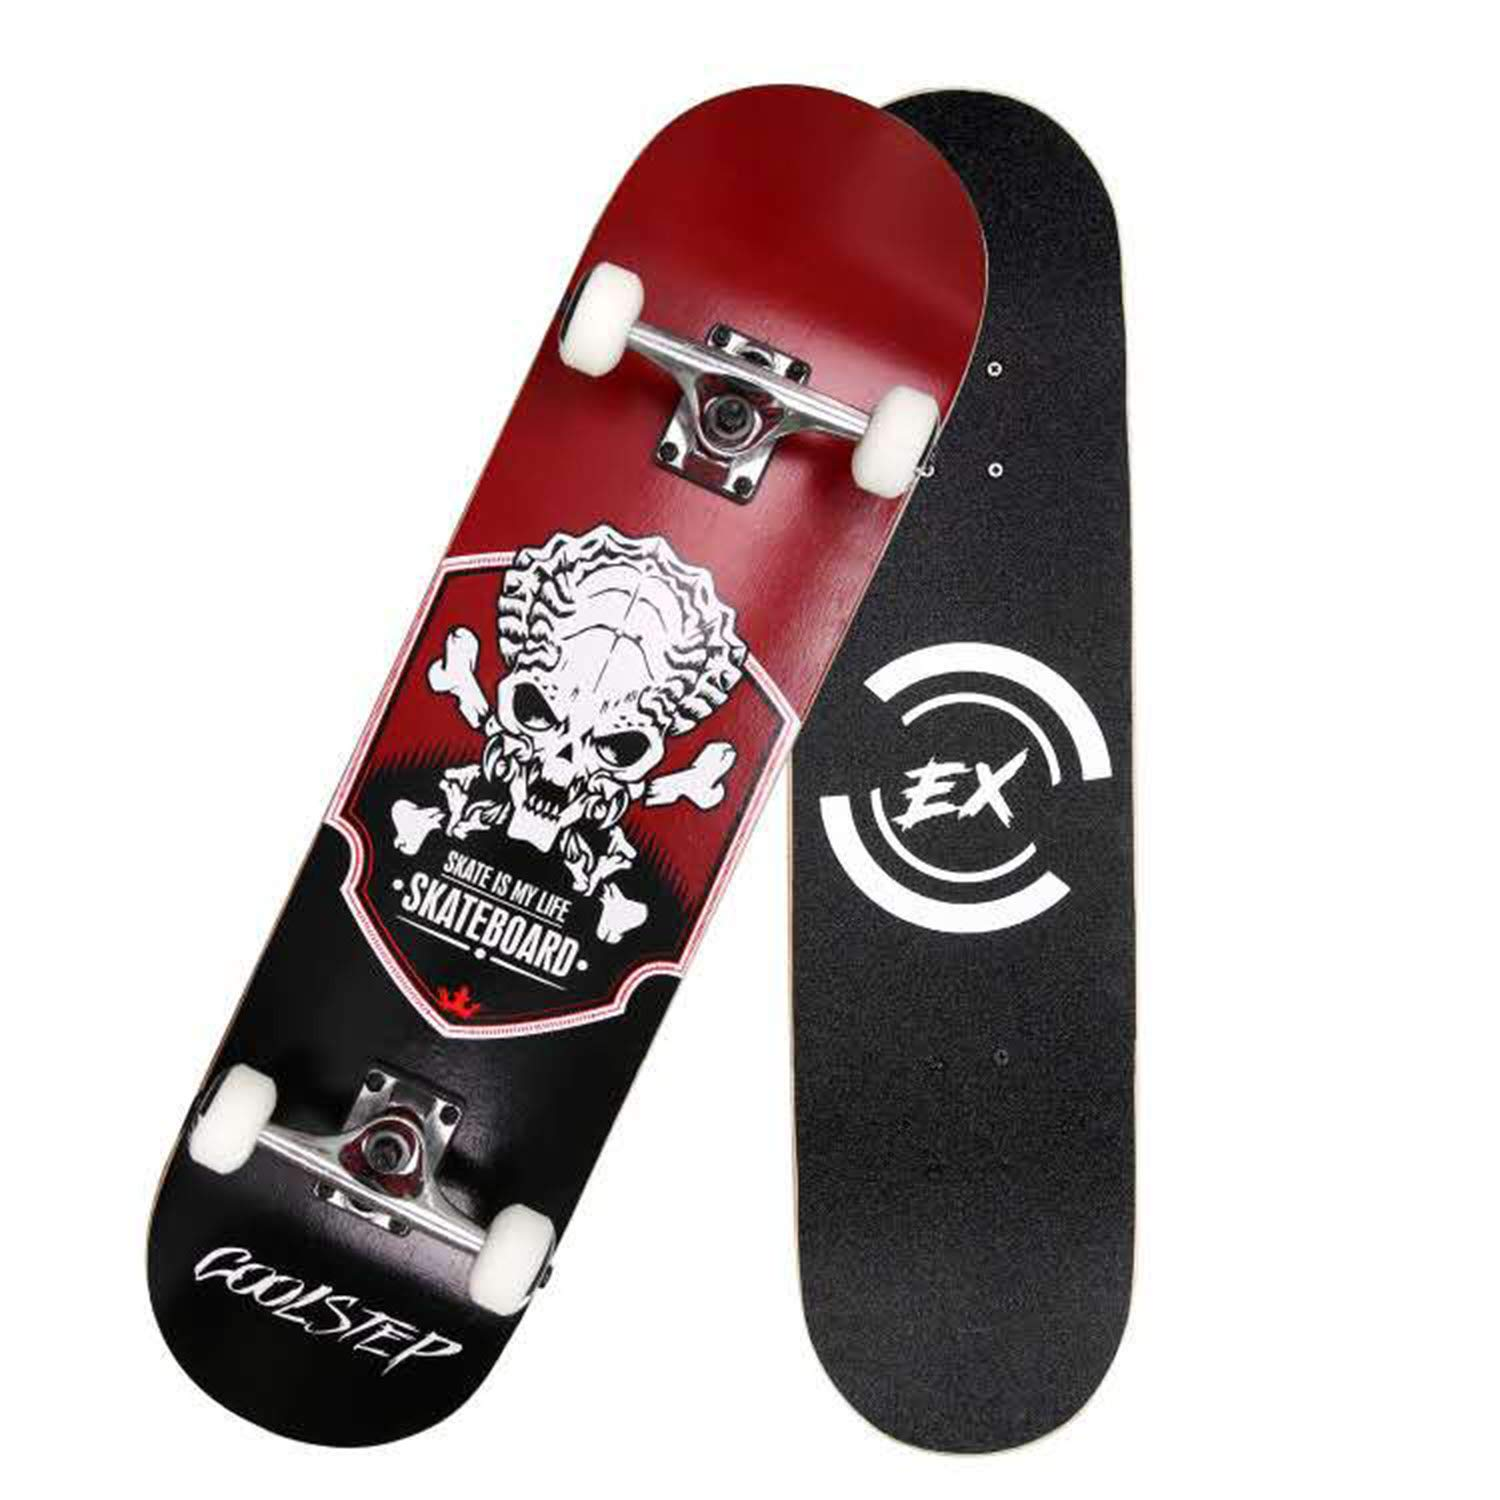 Pro Skateboard 31'' X 8'' Standard Skateboards Cruiser Complete Canadian Maple 8 Layers Double Kick Concave Skate Boards